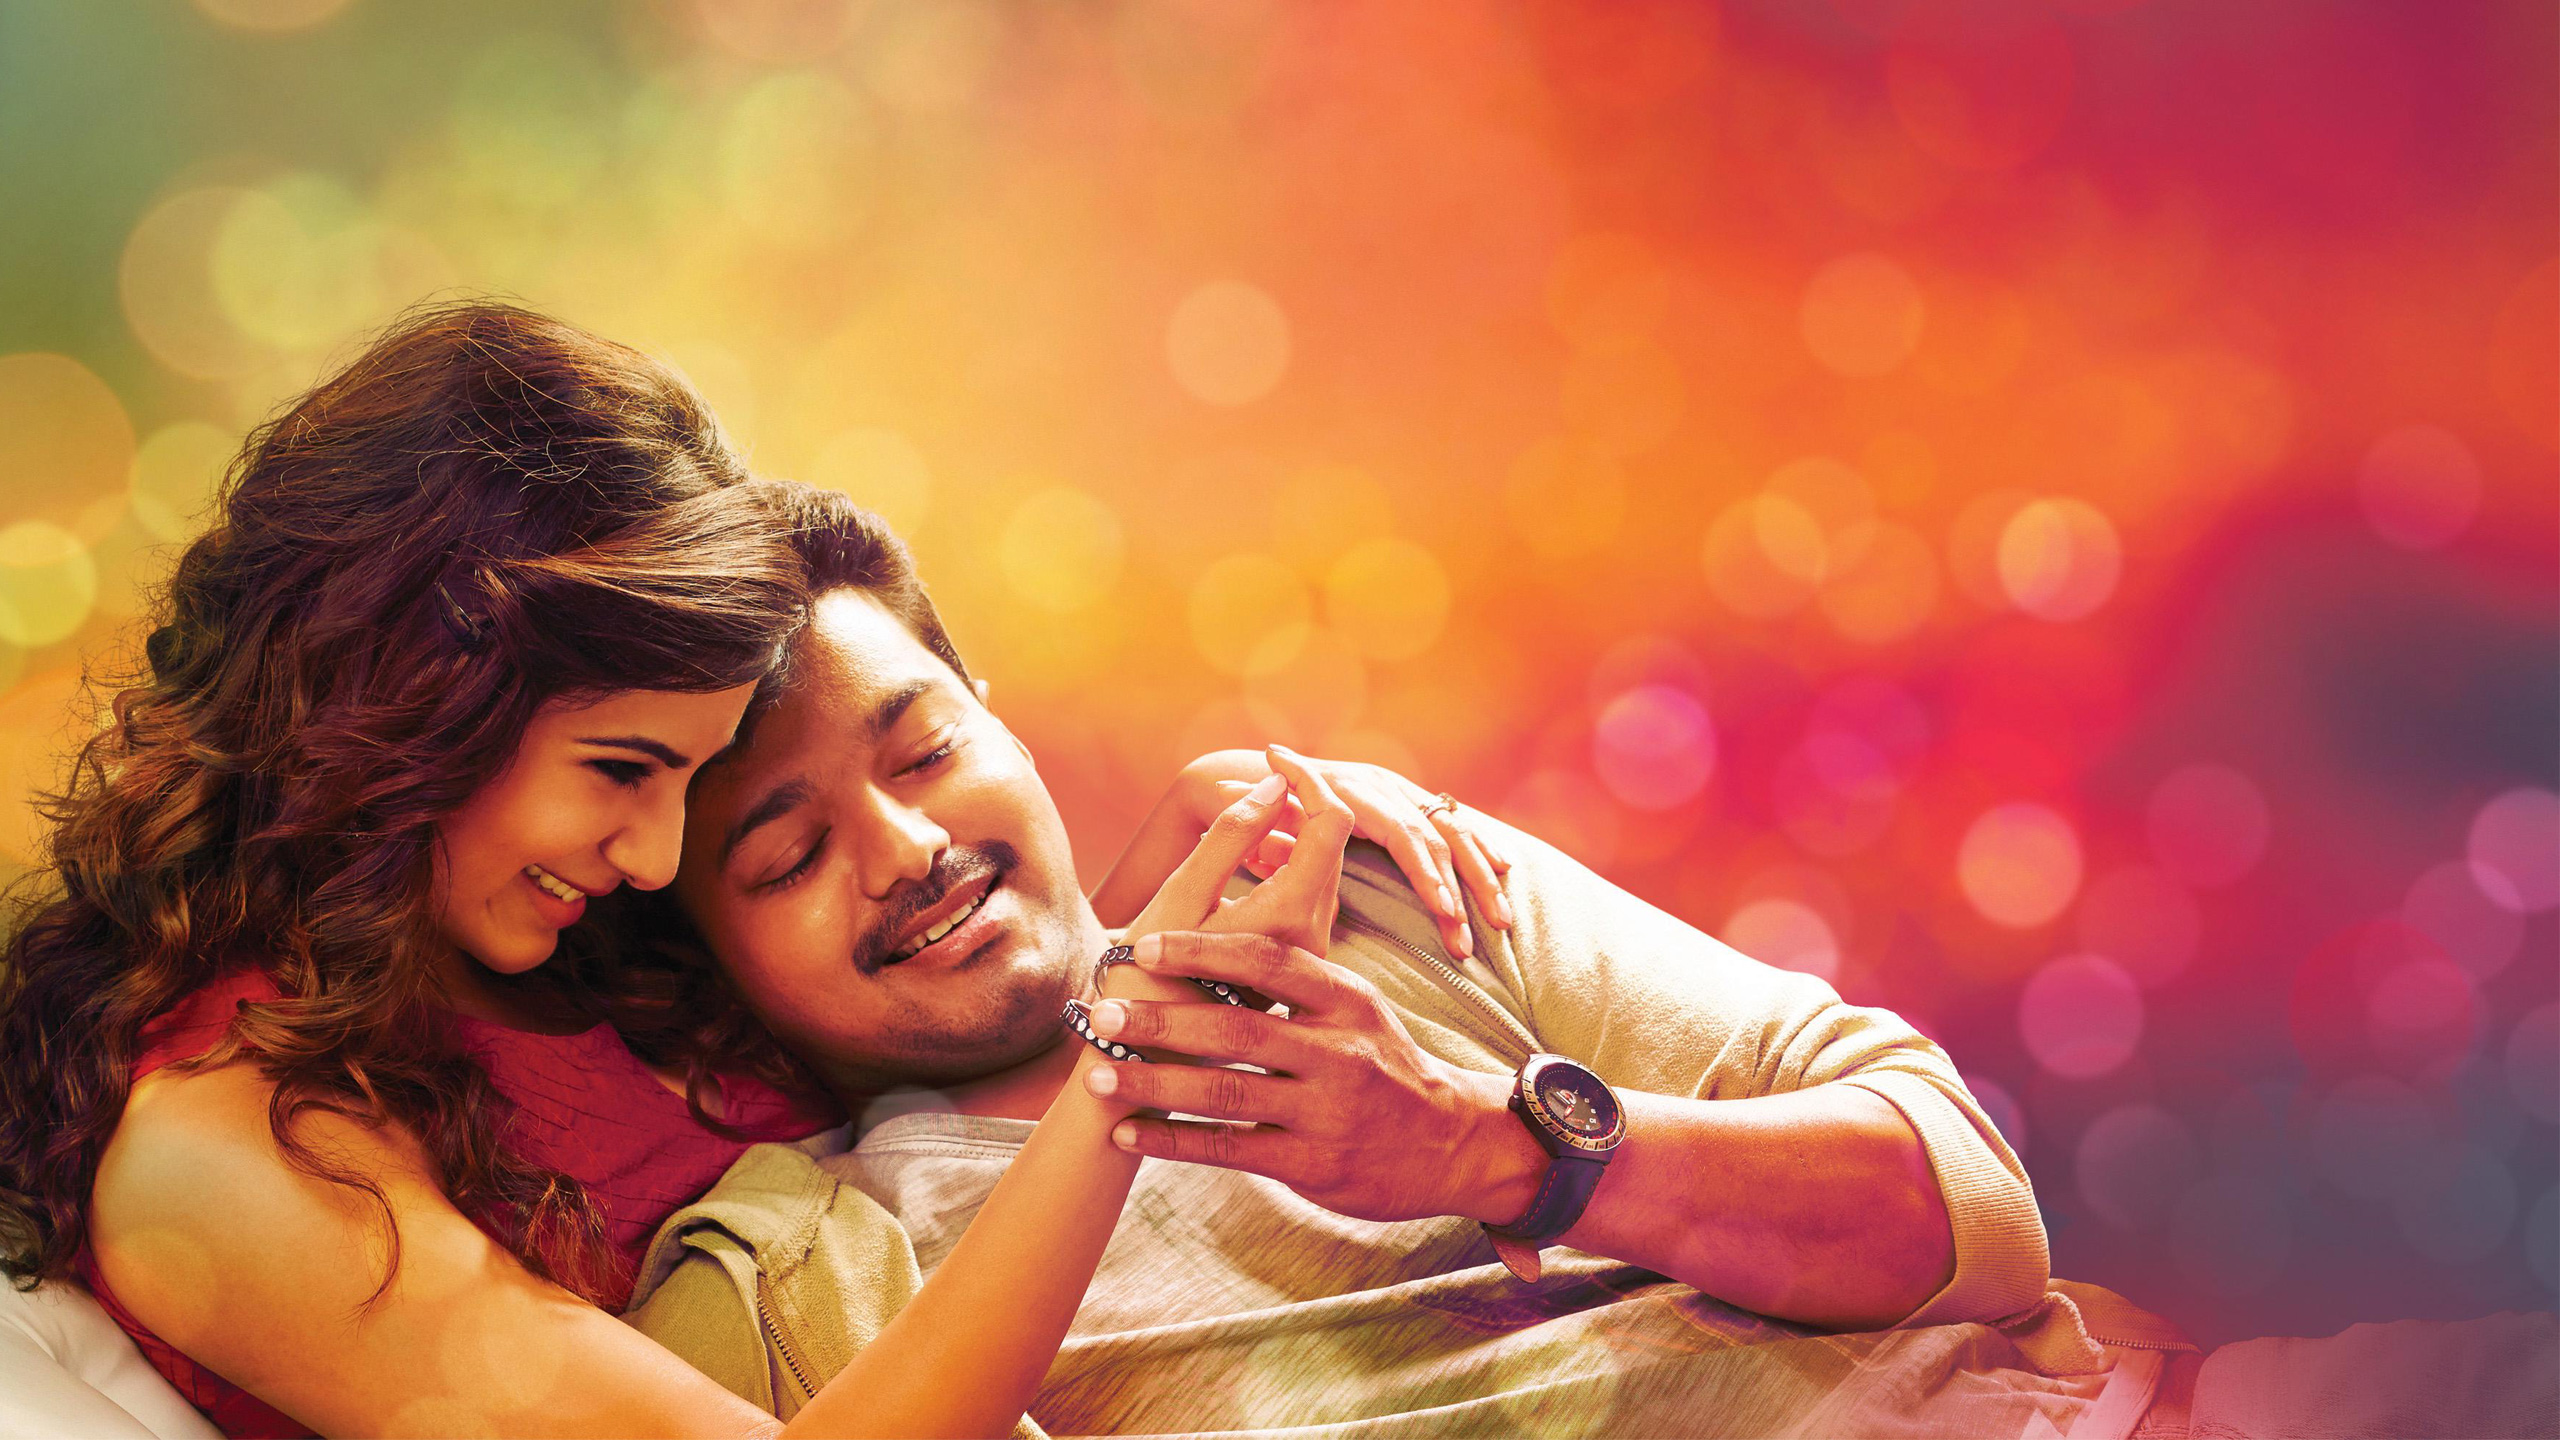 Vijay Wallpapers, Photos And Desktop Backgrounds Up To 8K